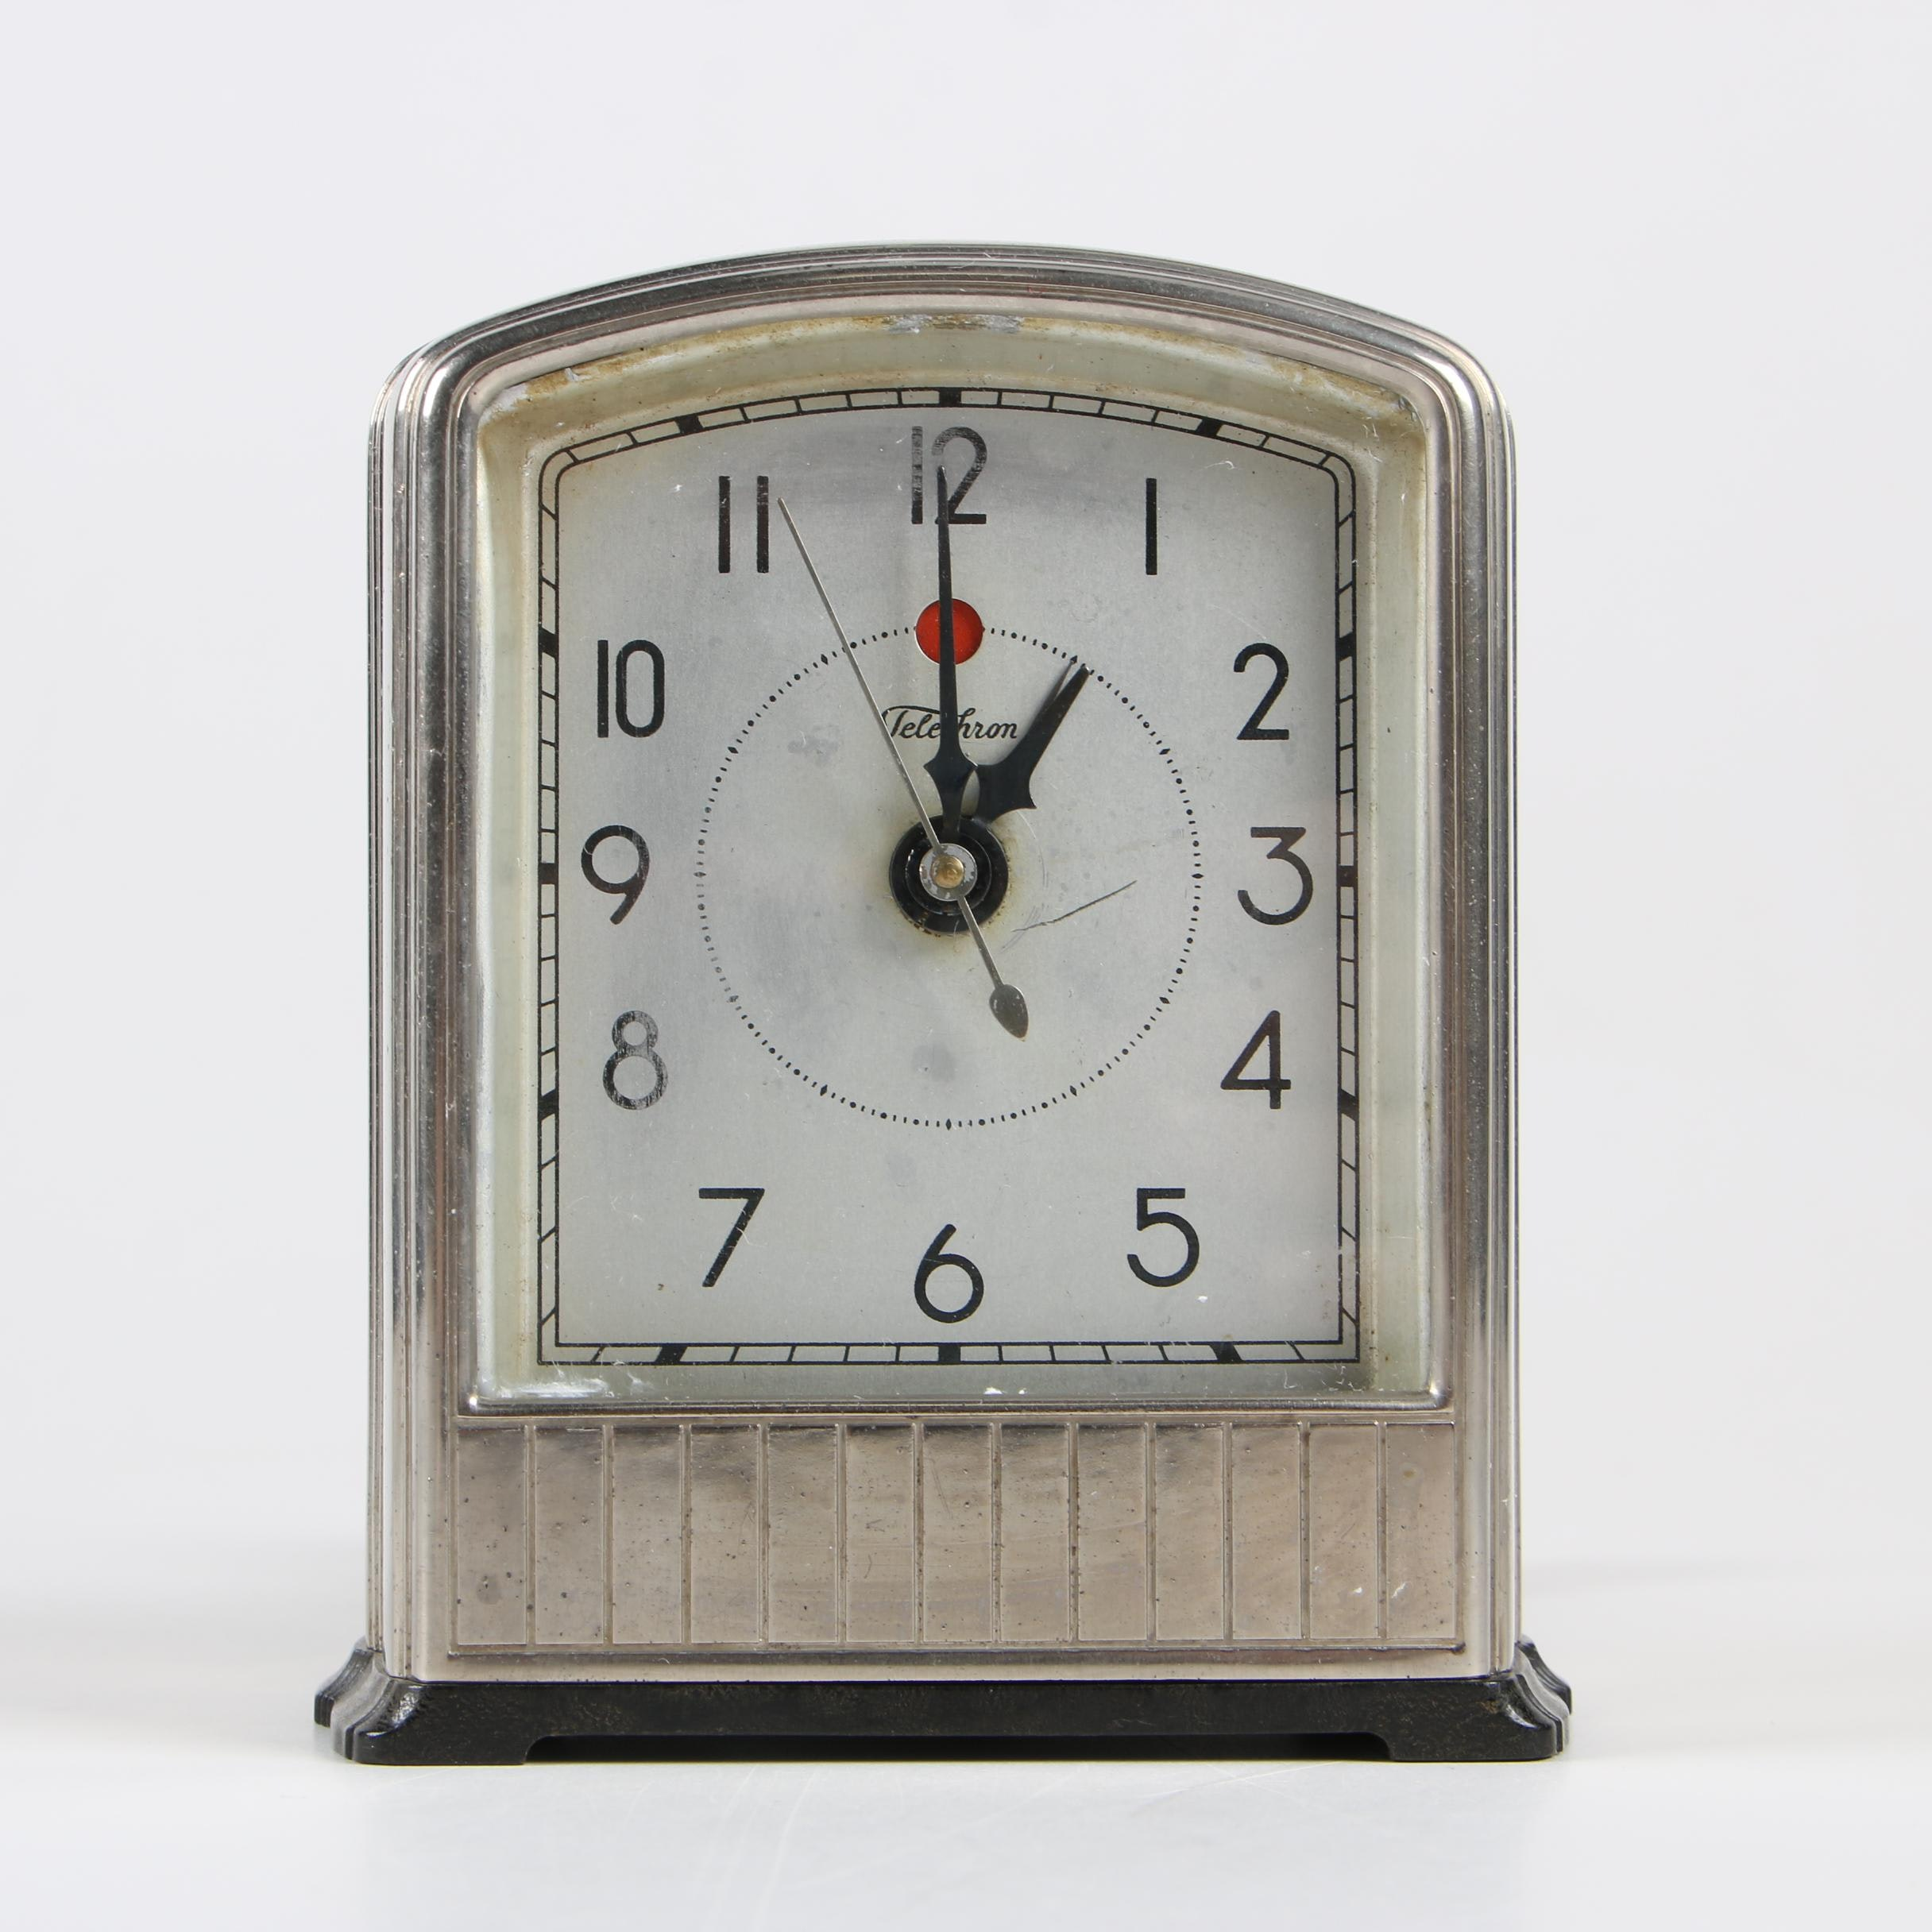 Telechron Dura-Silver-Alloy Electric Alarm Clock, Early 1930s